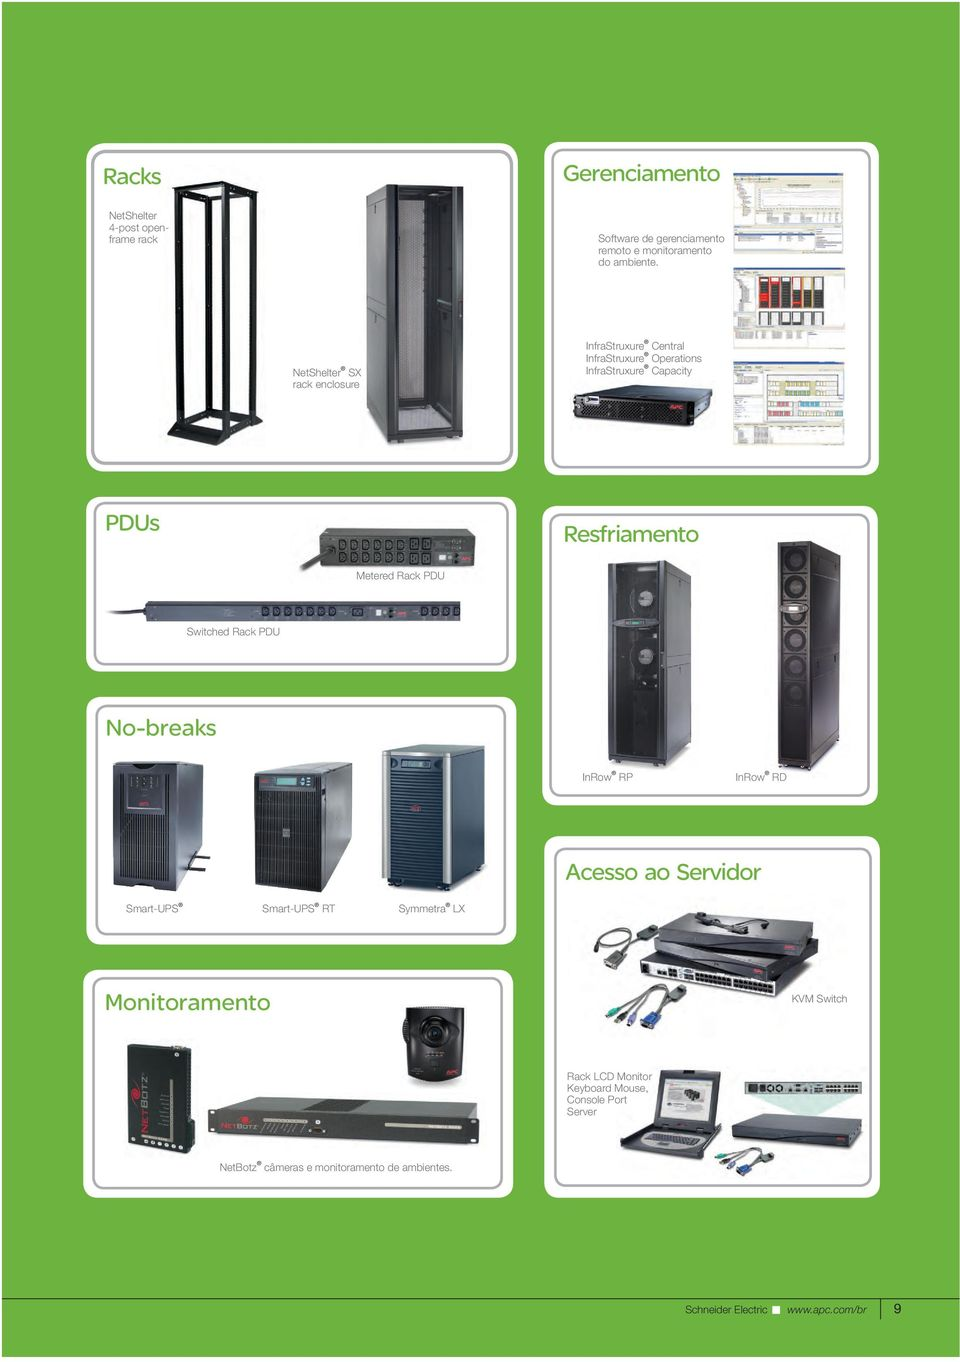 Metered Rack PDU Switched Rack PDU No-breaks InRow RP InRow RD Acesso ao Servidor Smart-UPS Smart-UPS RT Symmetra LX